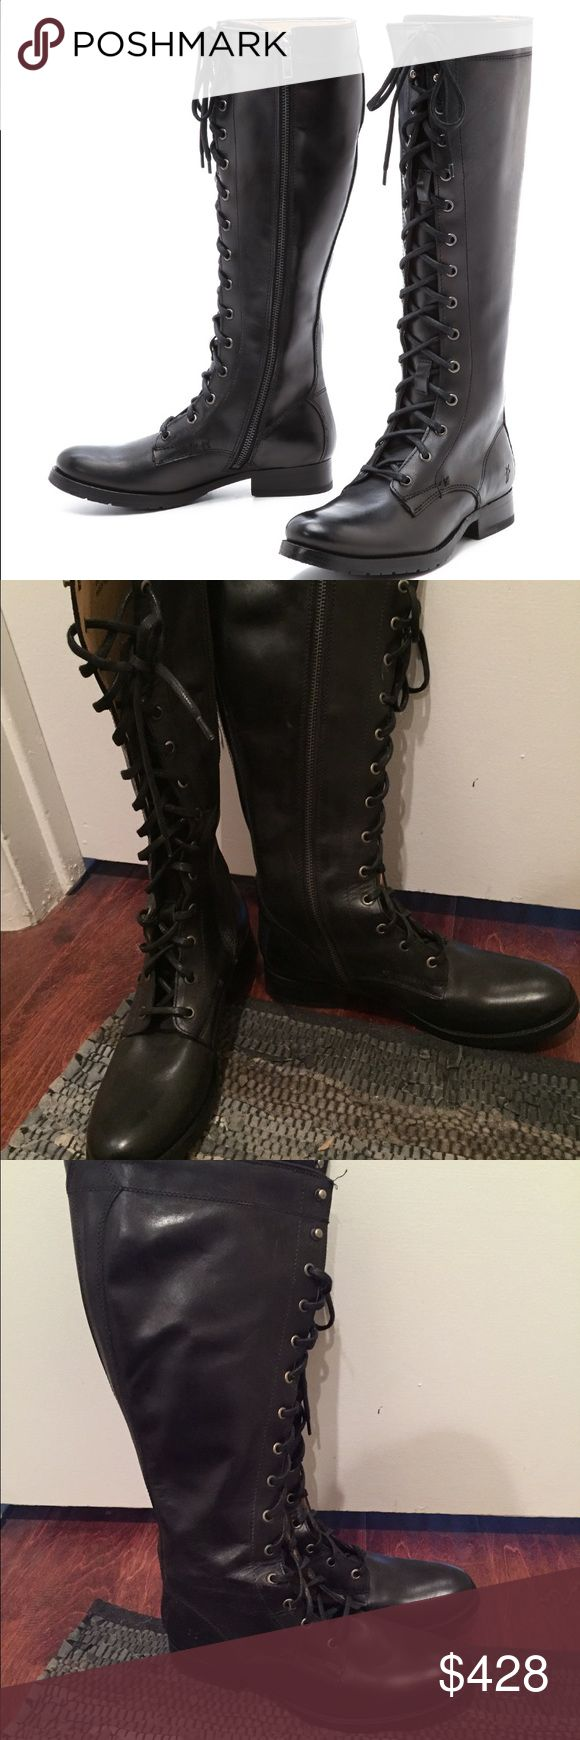 New Frye Melissa tall boot New without box Frye Melissa tall lace up boot. Combat style knee-high boot. Size 8, Made in Mexico Frye Shoes Combat & Moto Boots